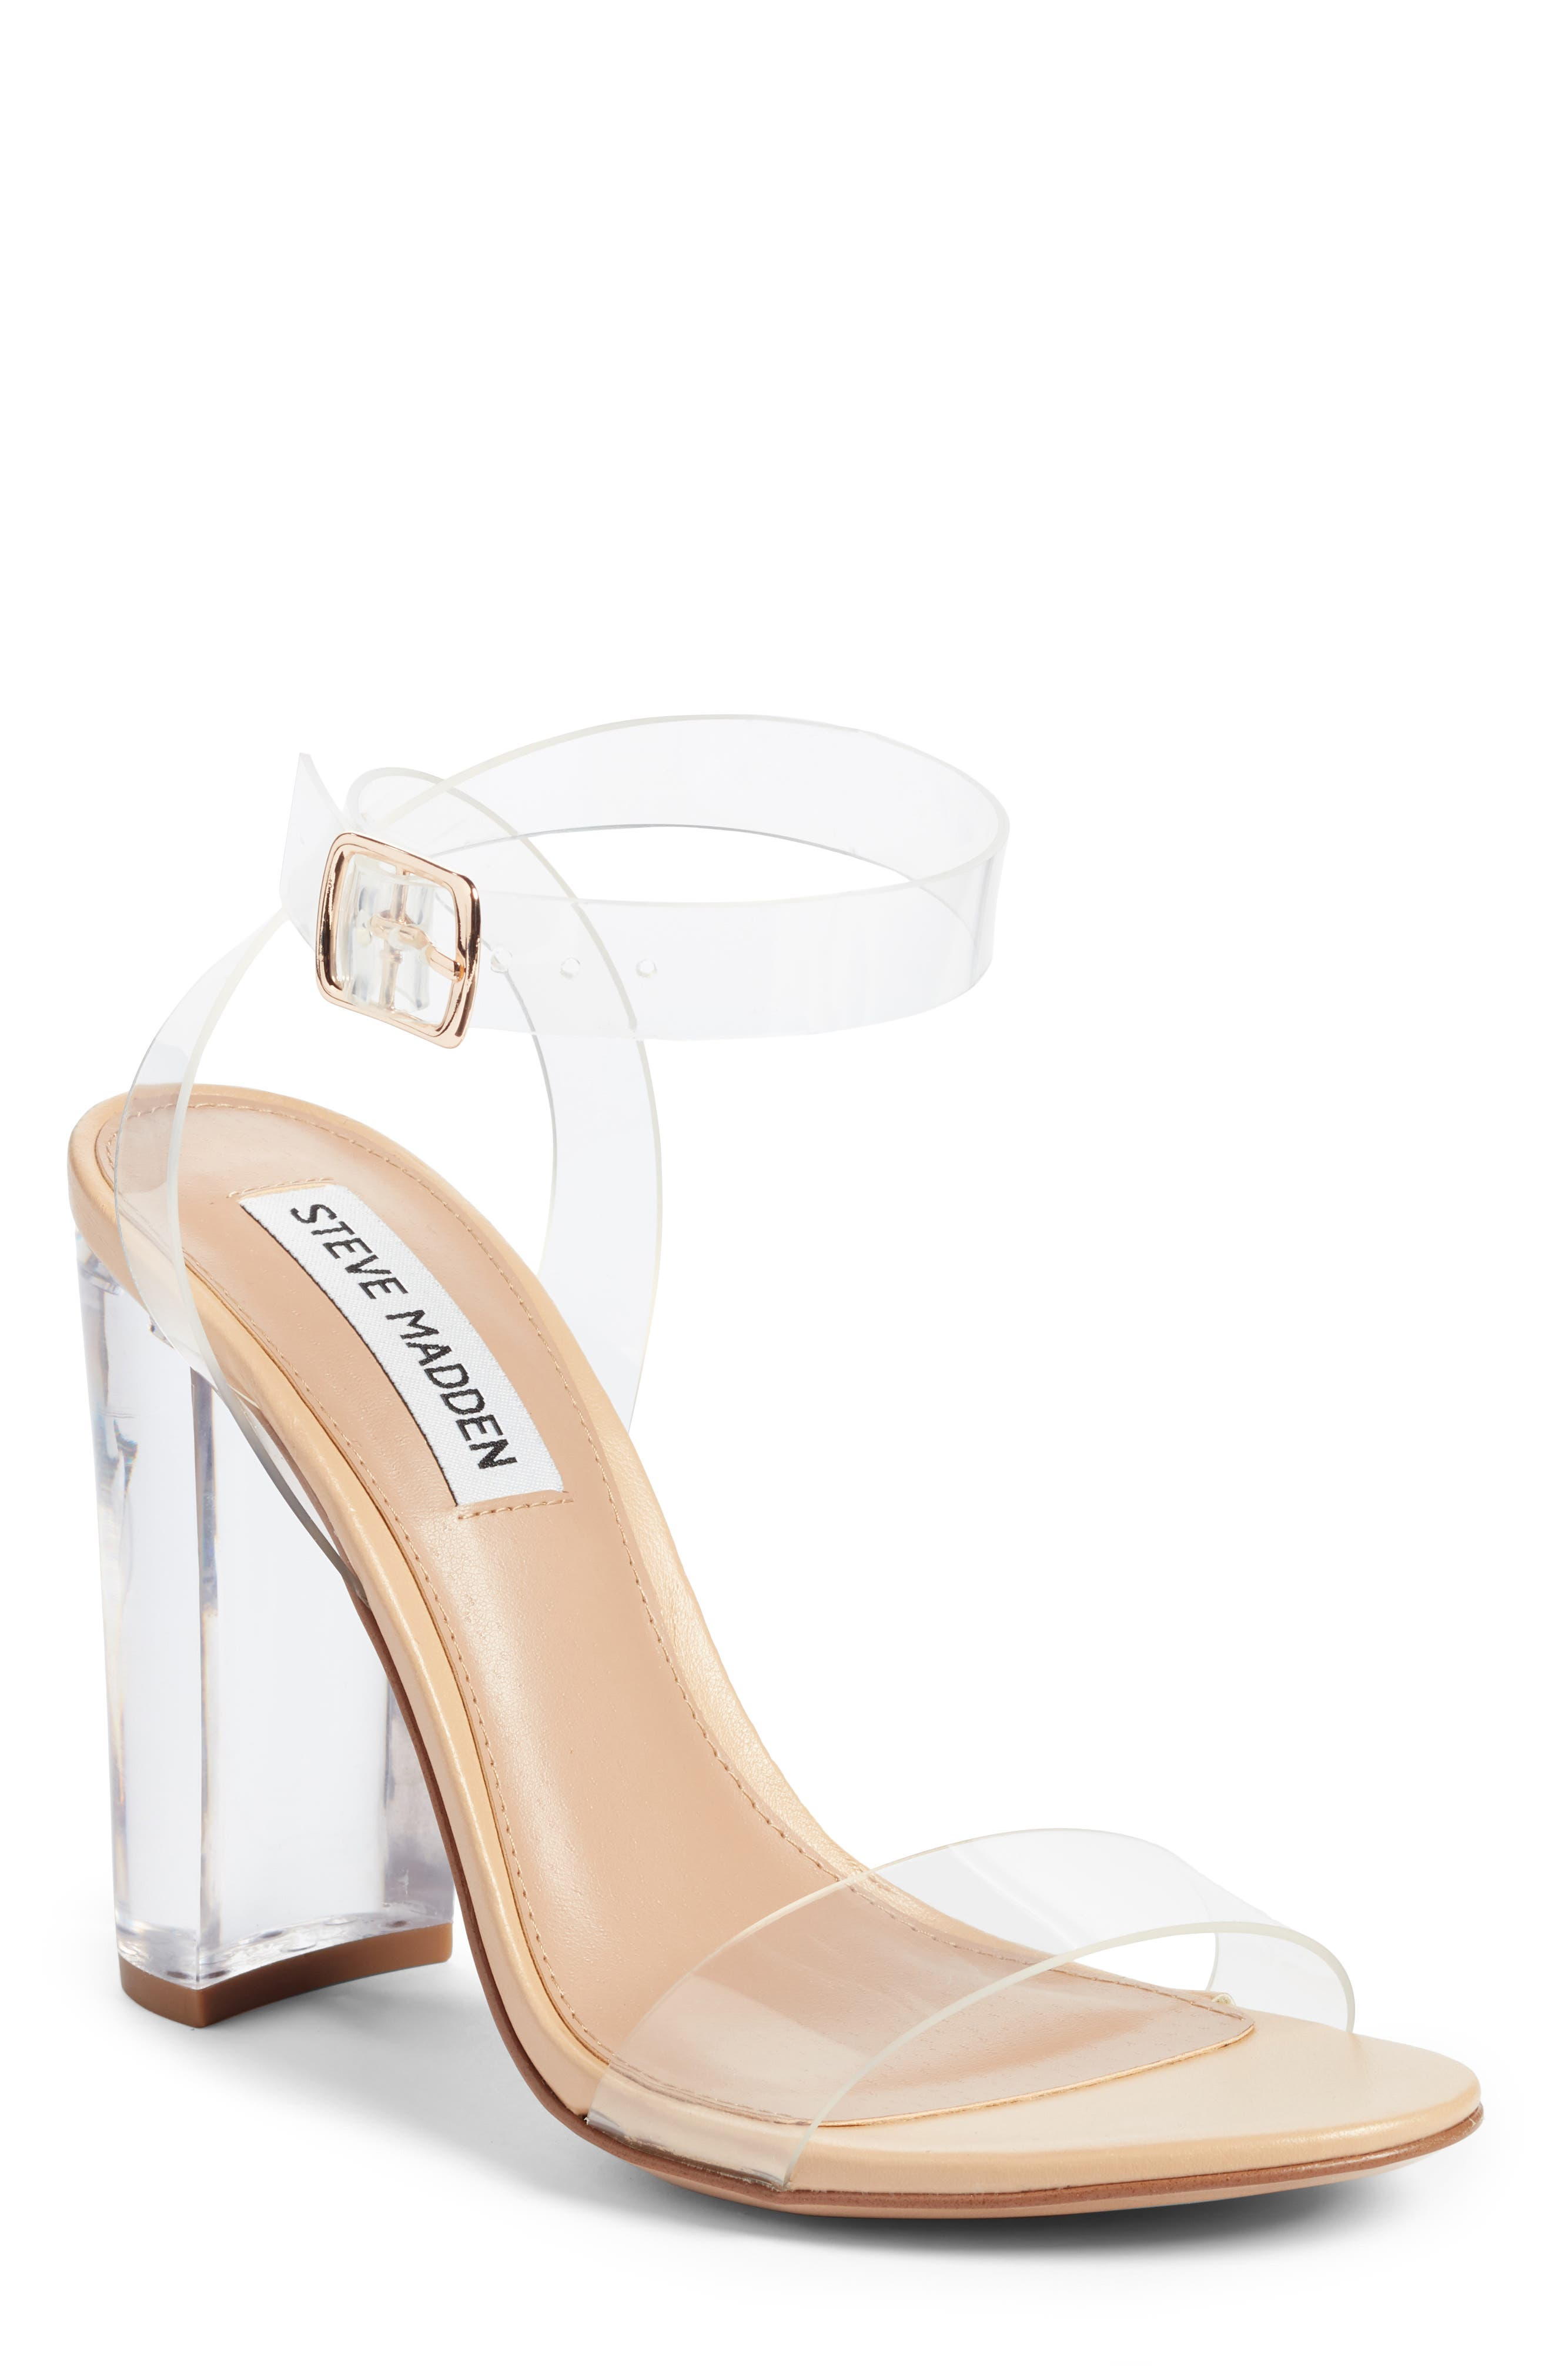 Camille Clear Sandal,                             Main thumbnail 1, color,                             Clear